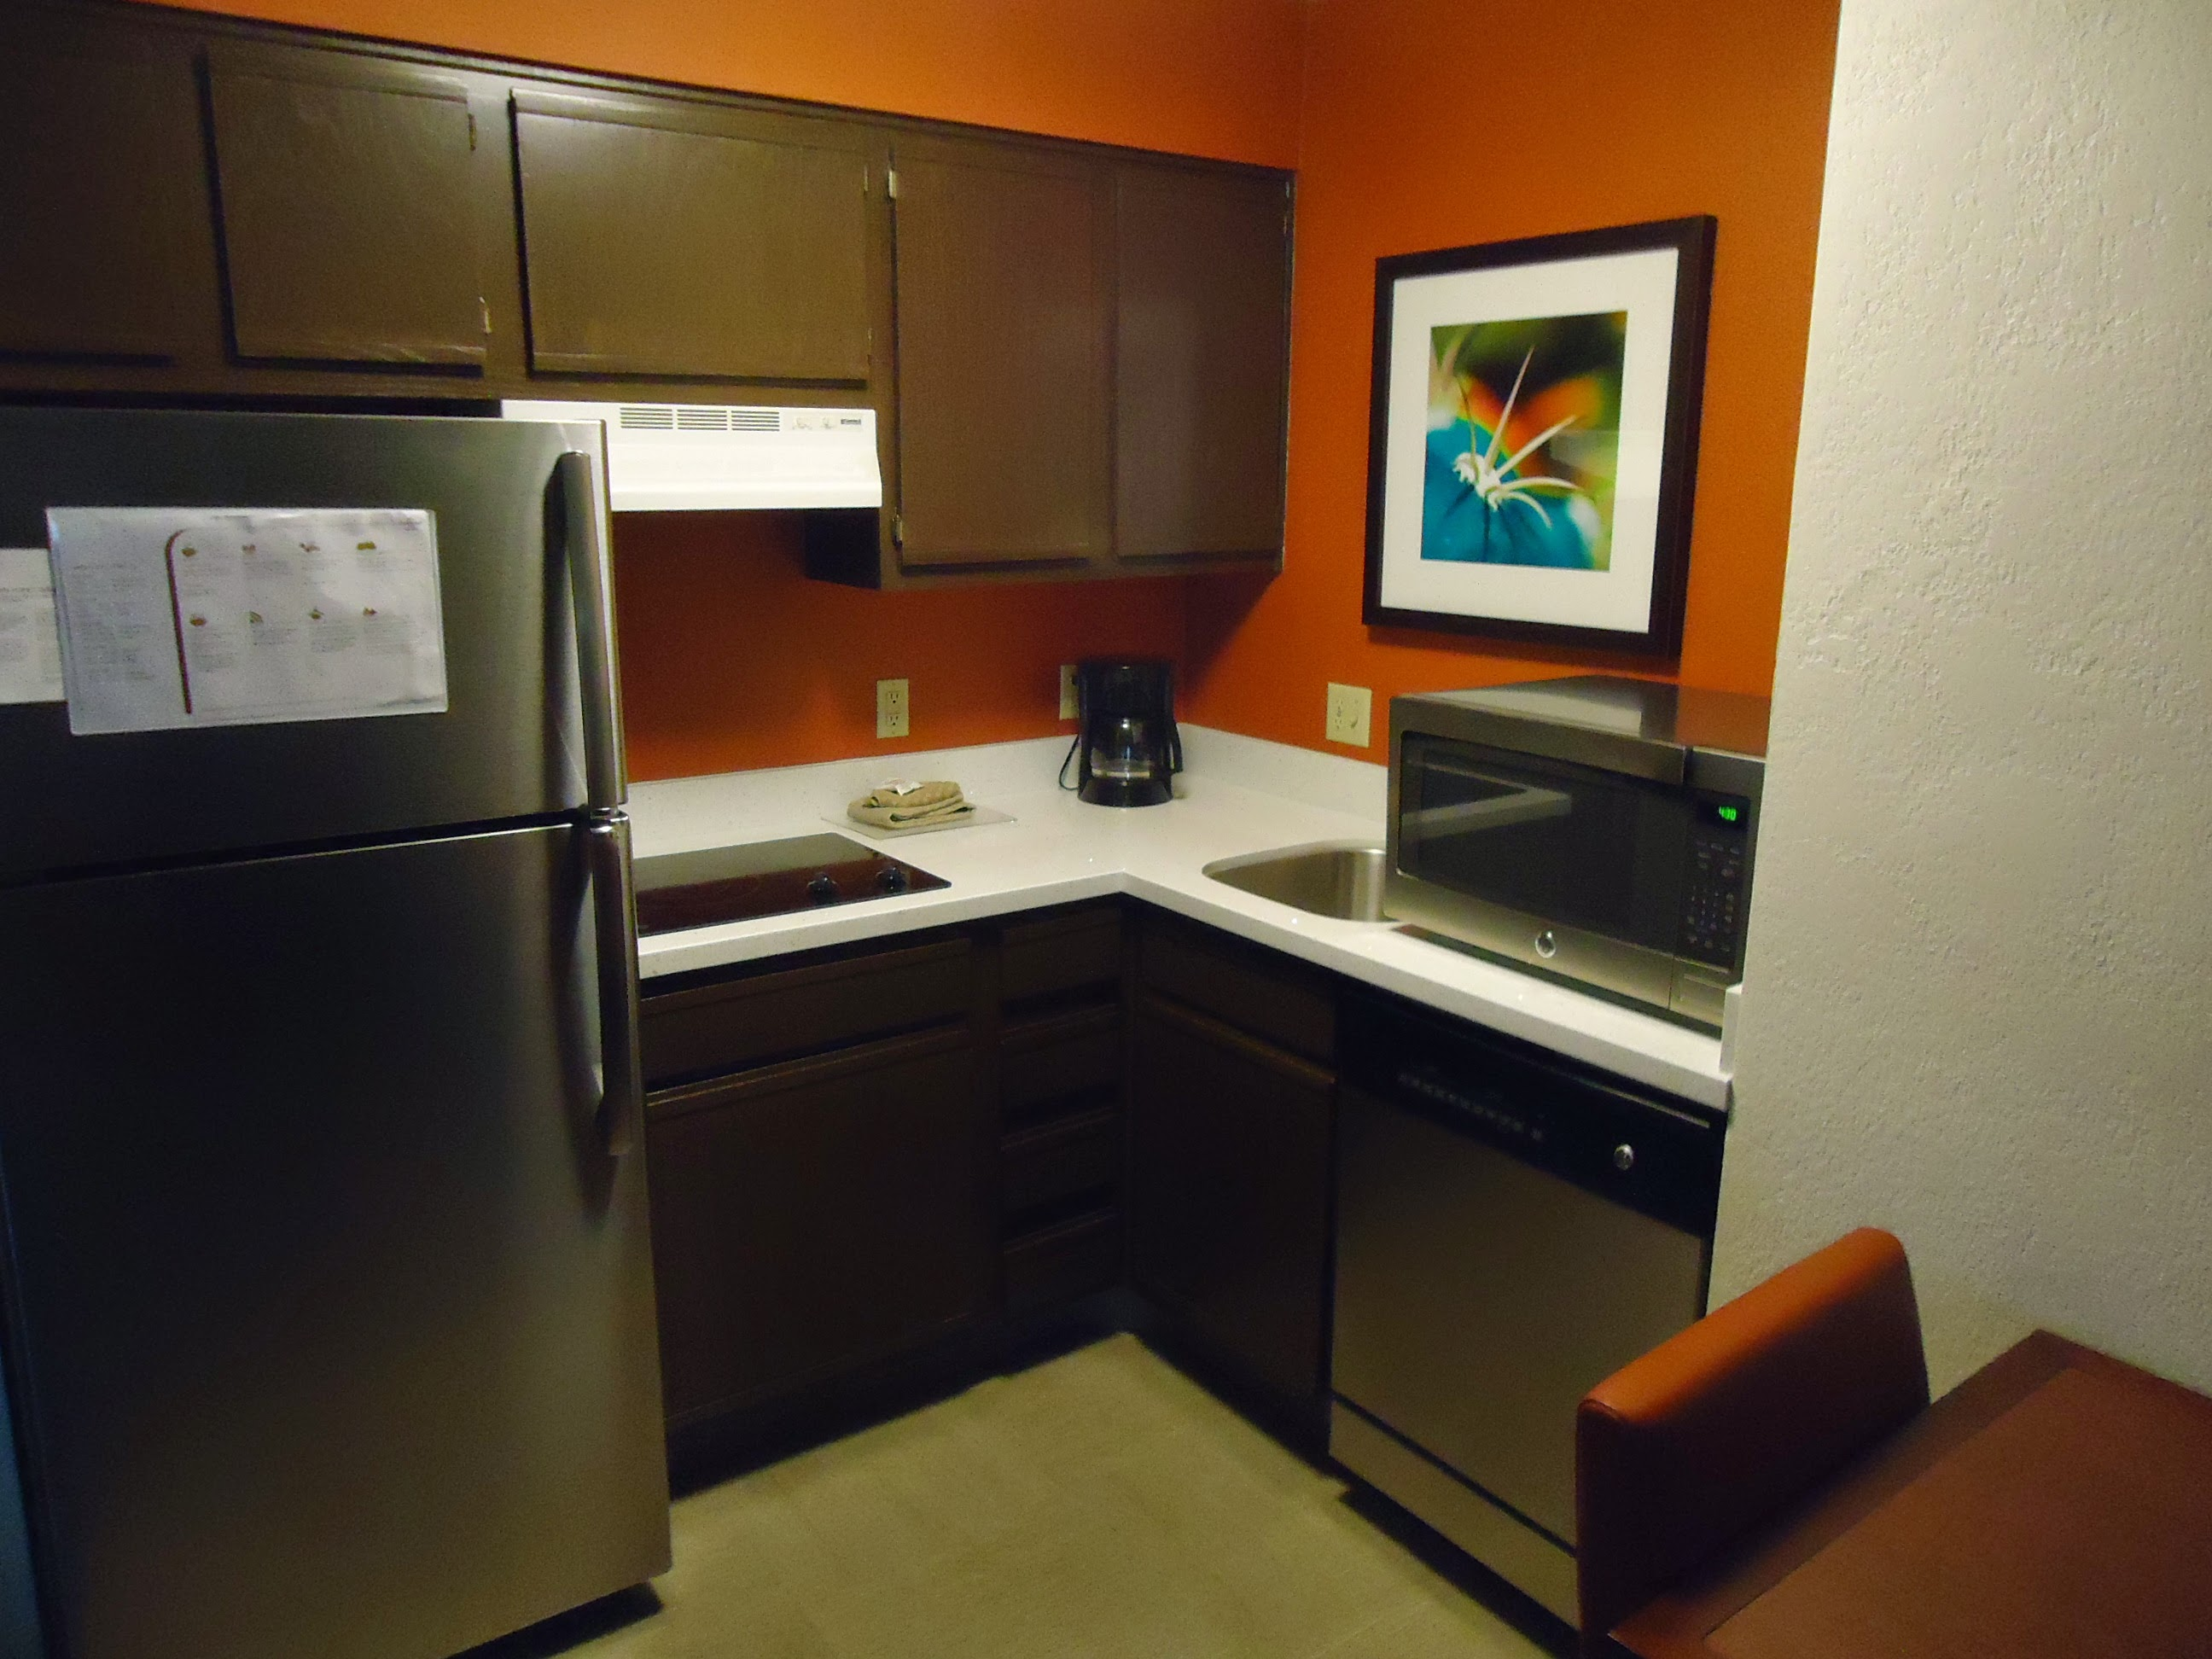 of lodging size unique kitchens cheap hotel beautiful rooms kitchen elegant large com photos hotels with full long term